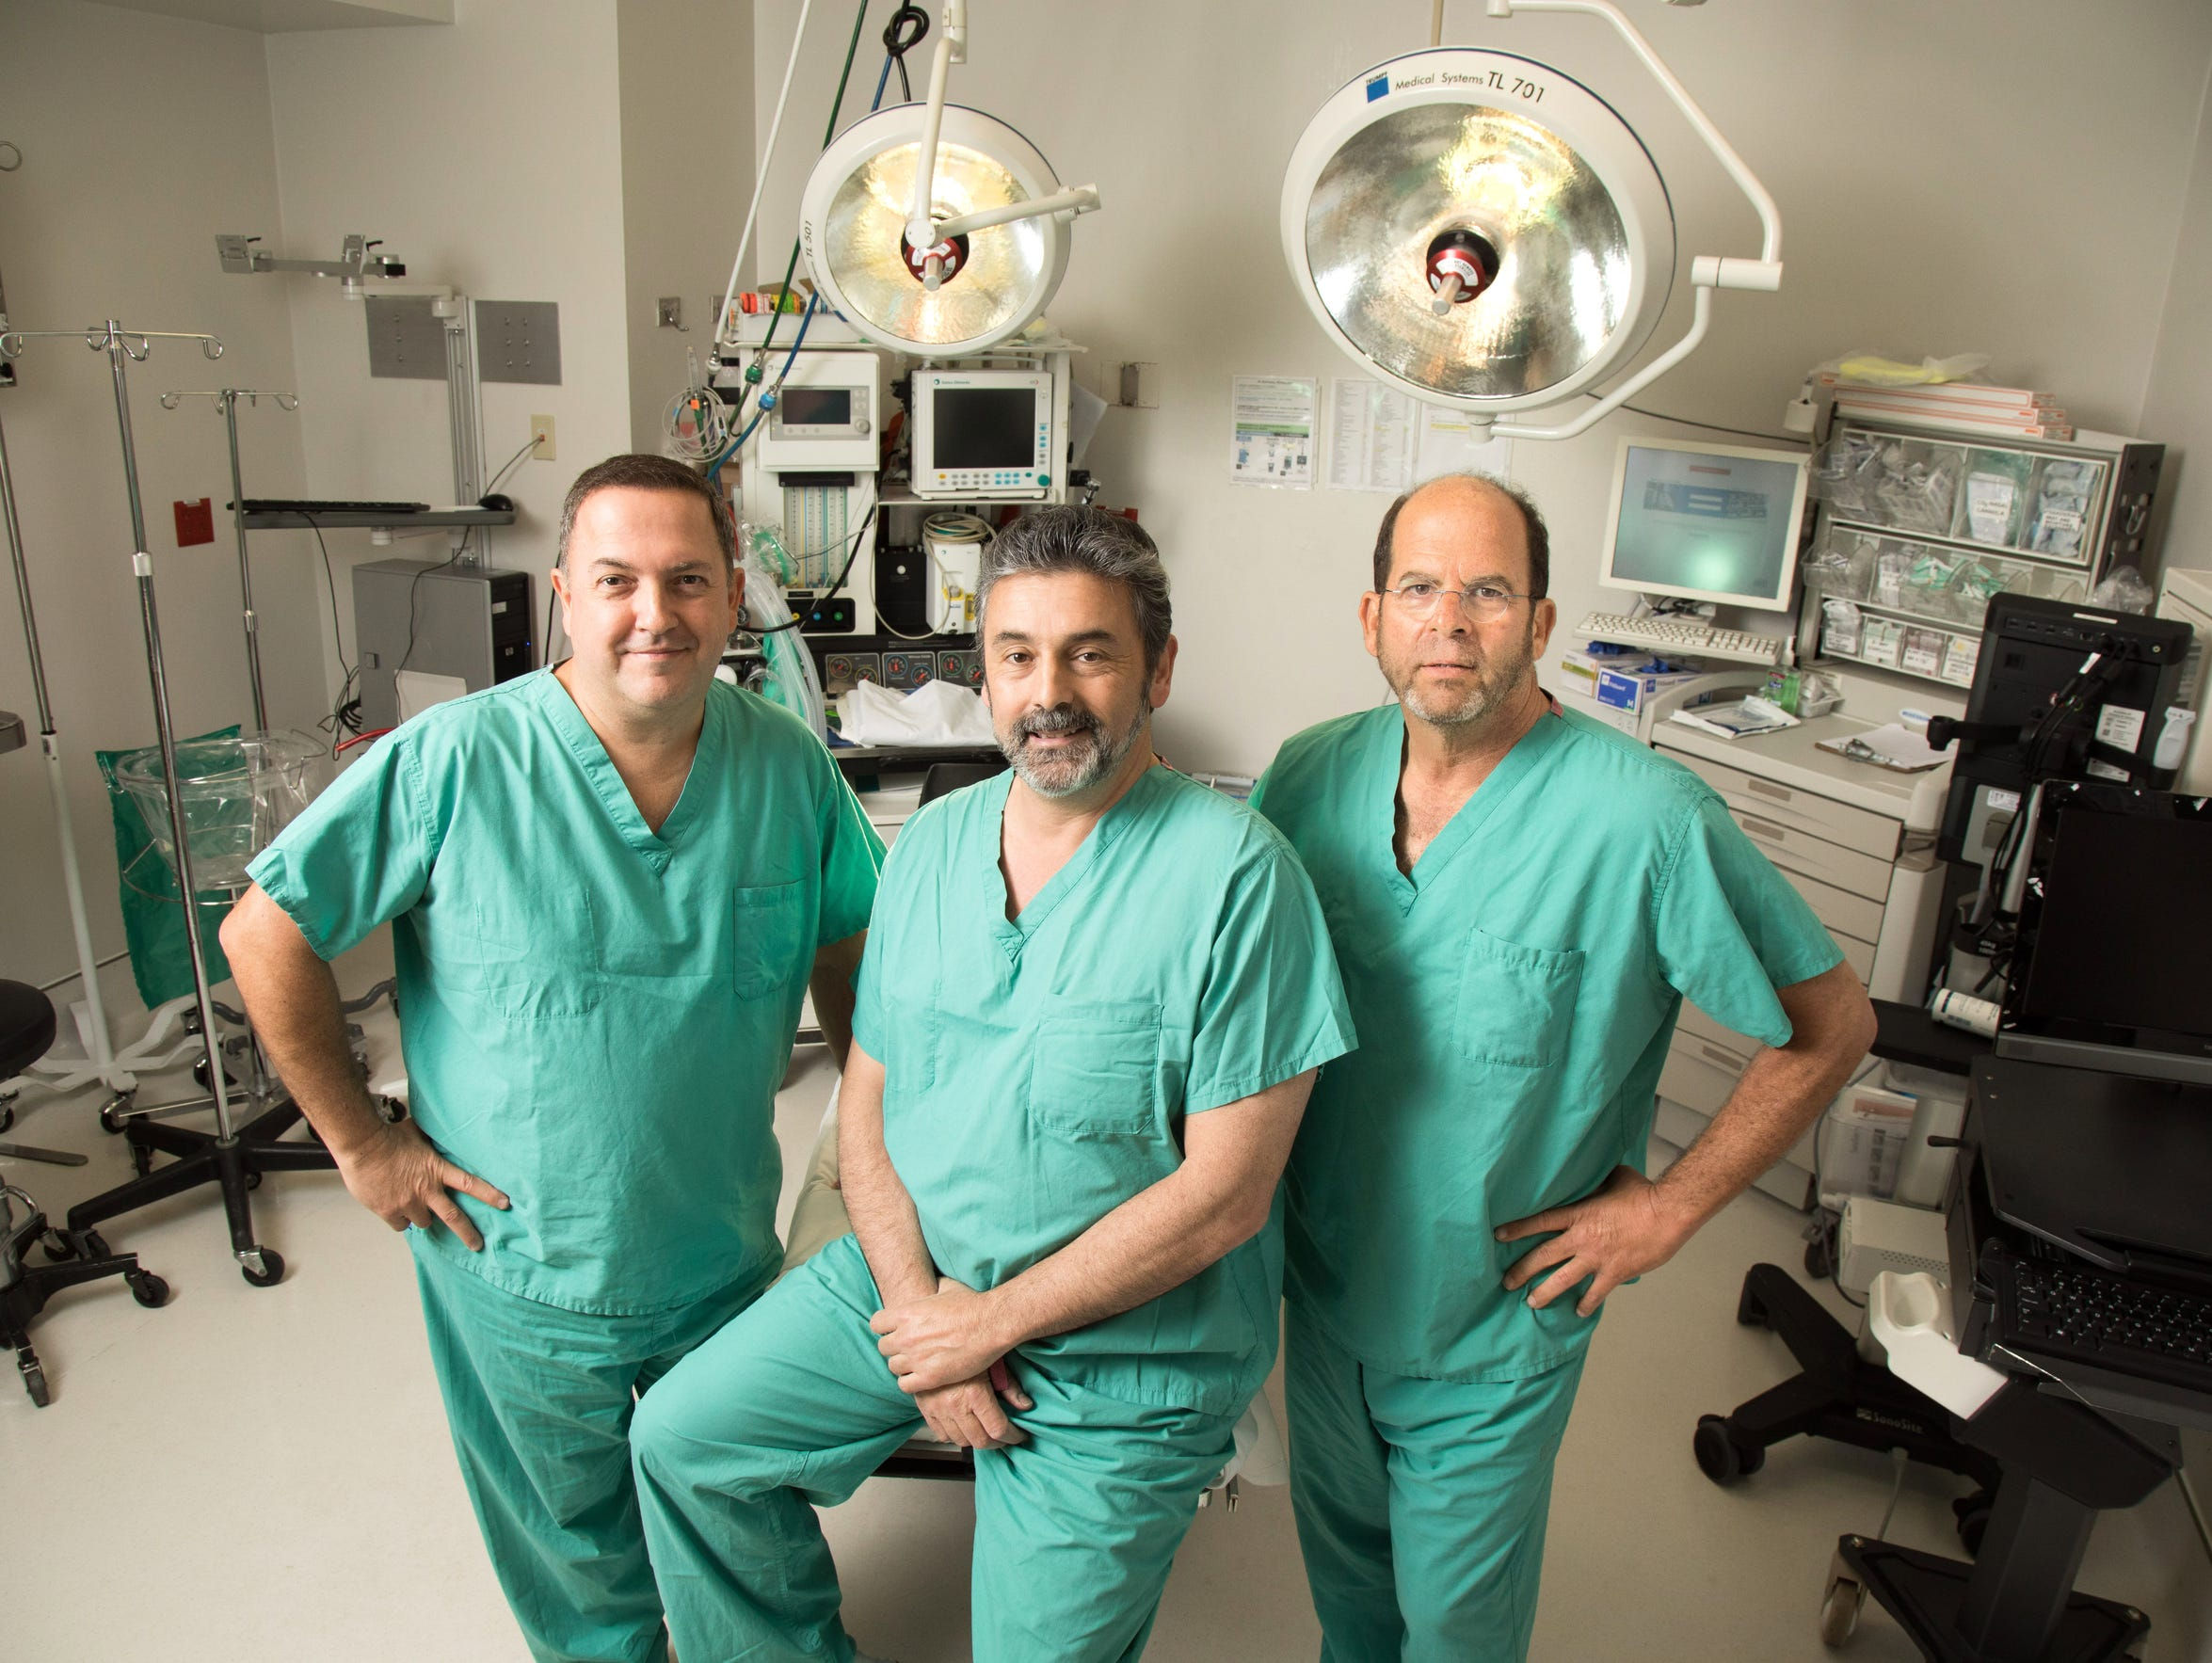 From left, doctors Anthony Georges, John Gallucci and